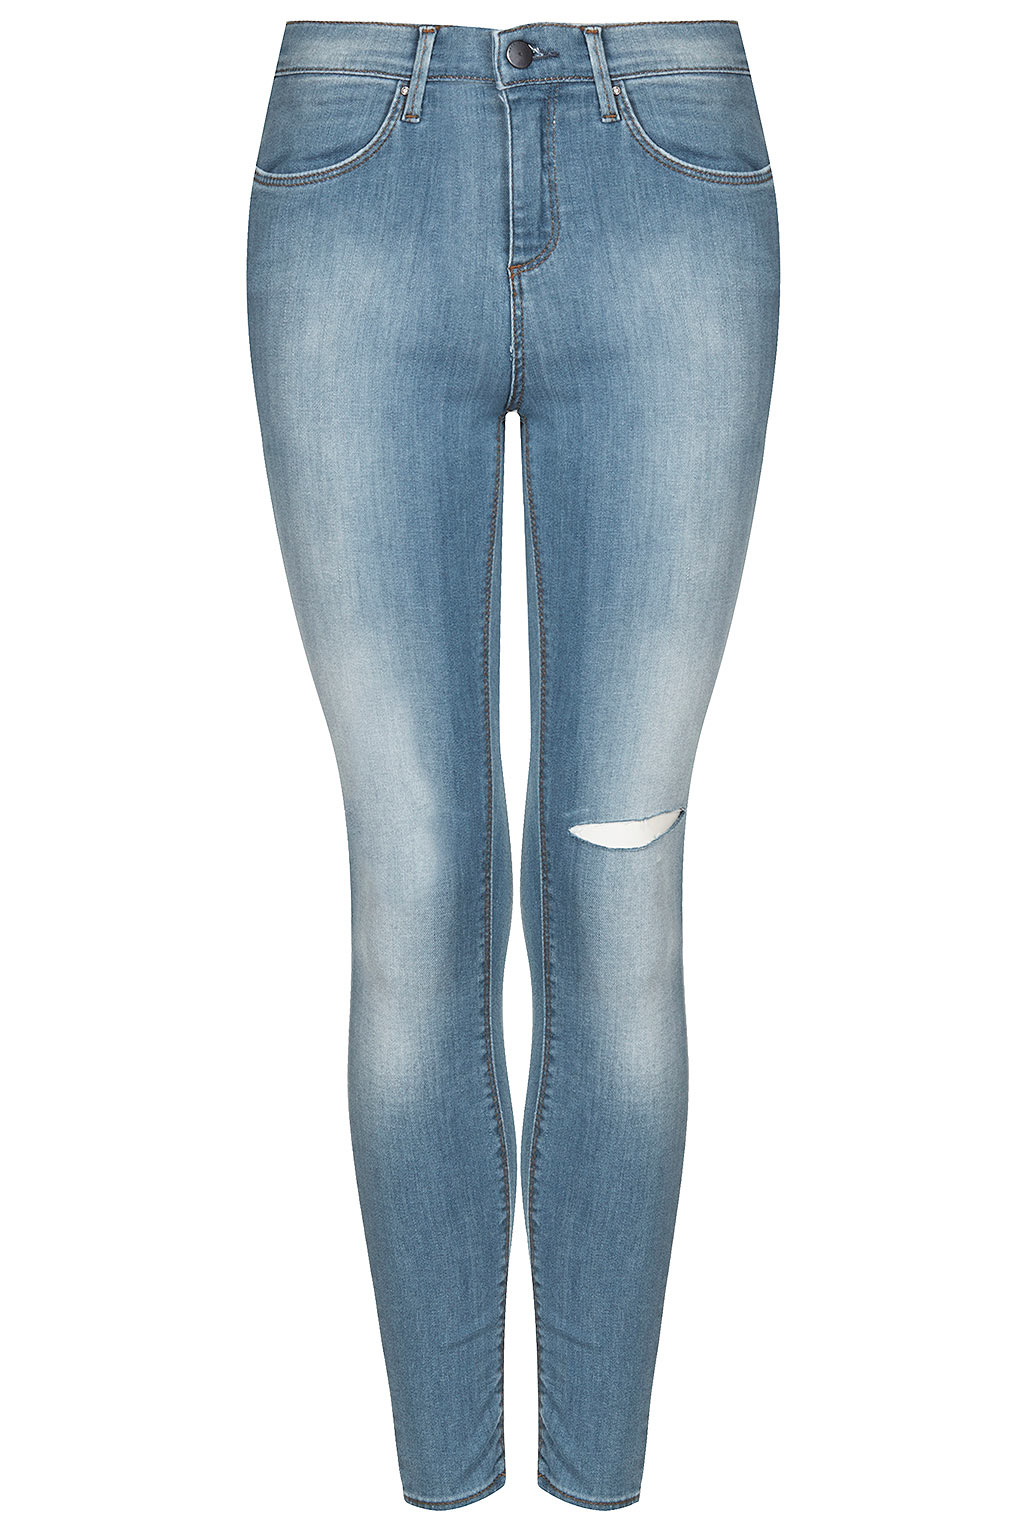 Topshop Bleach Ripped Knee Skinny Jeans in Blue | Lyst